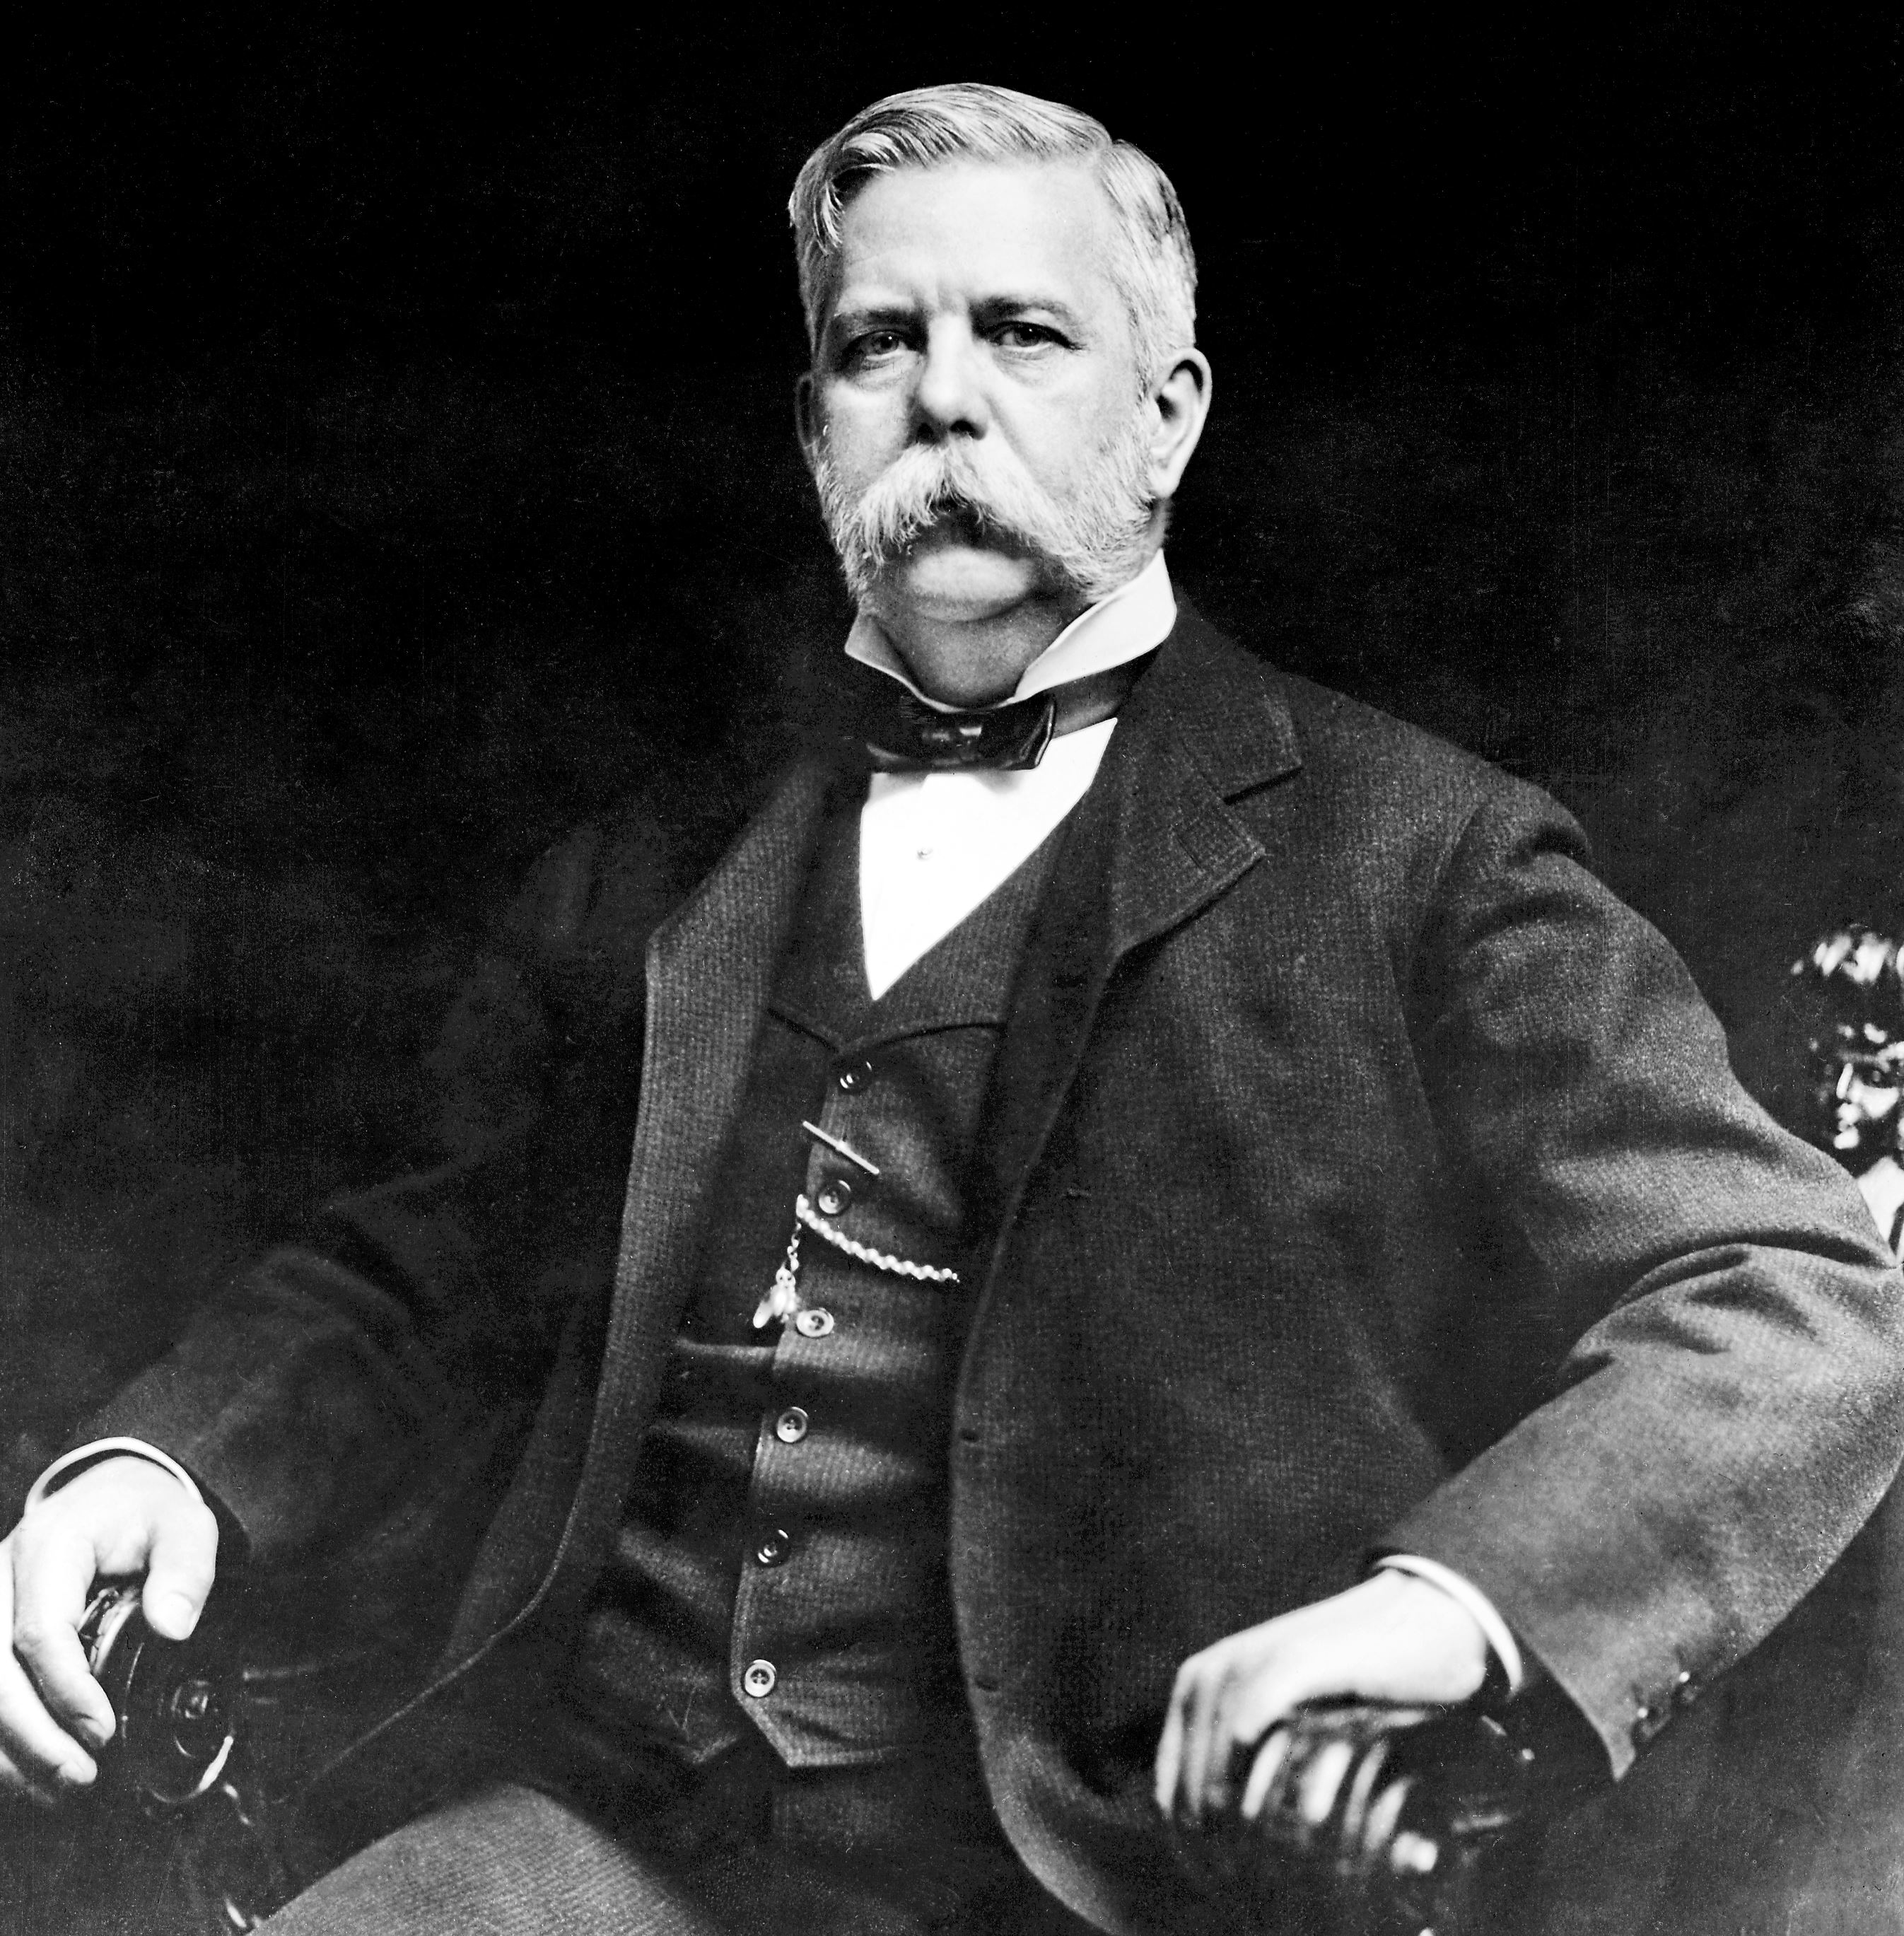 george westinghouse Father of john, george and henry westinghouse husband to emiline westinghouse.